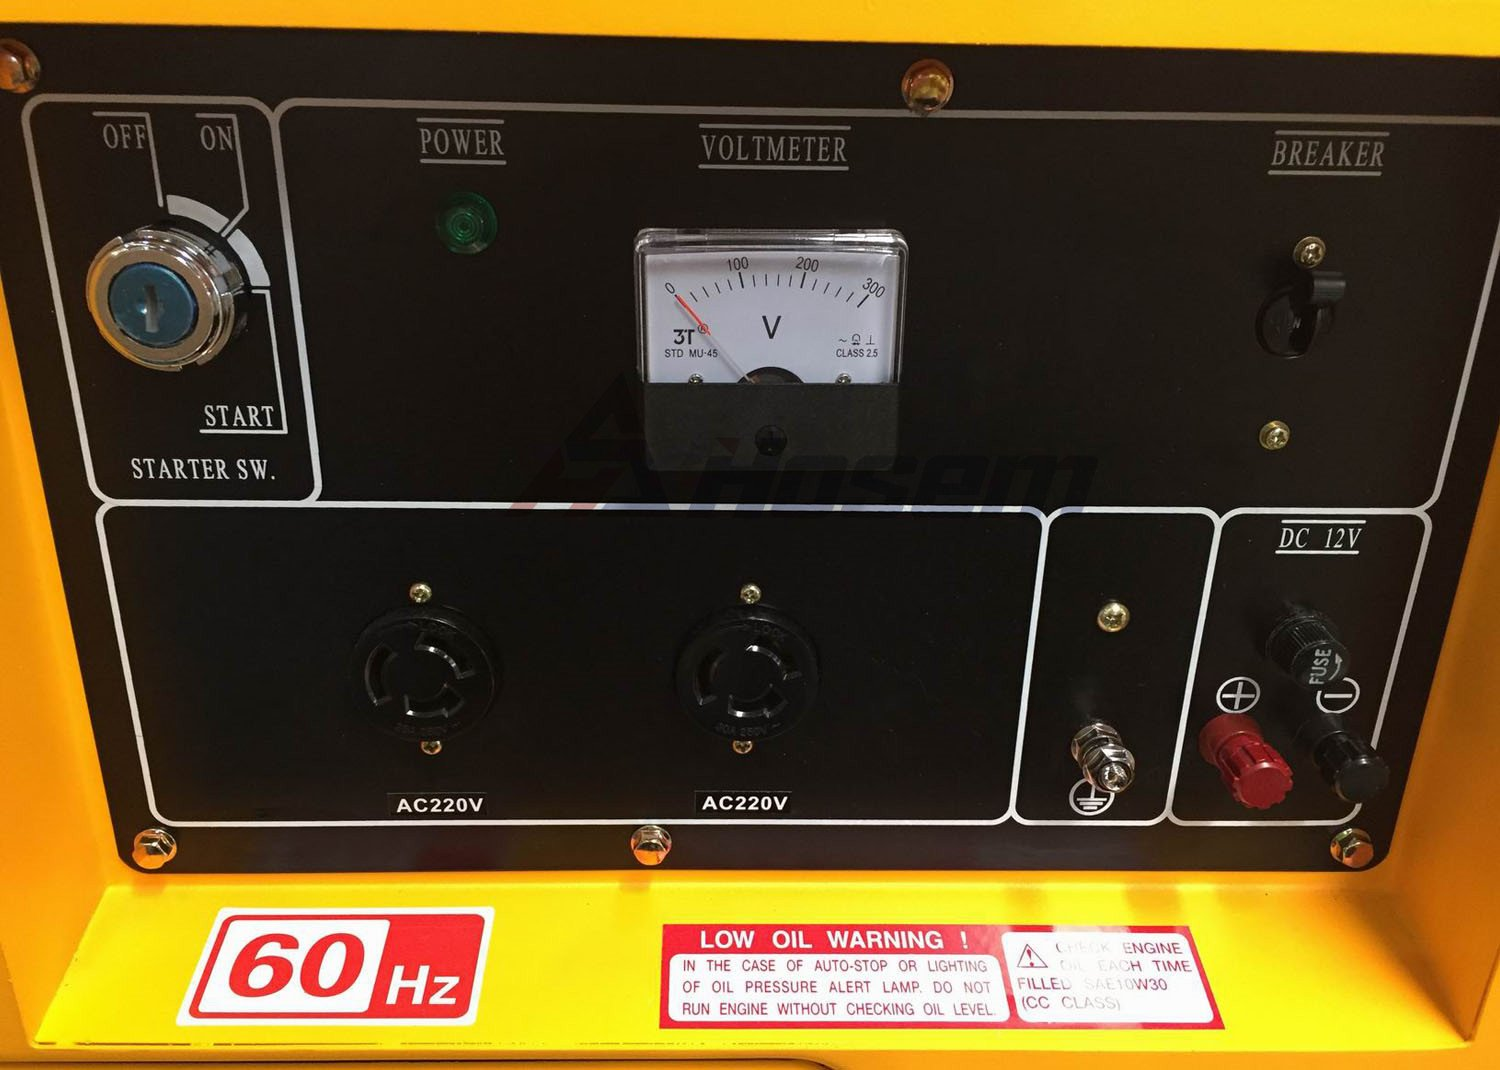 Control Panel Of Air Cooled Diesel Generator1